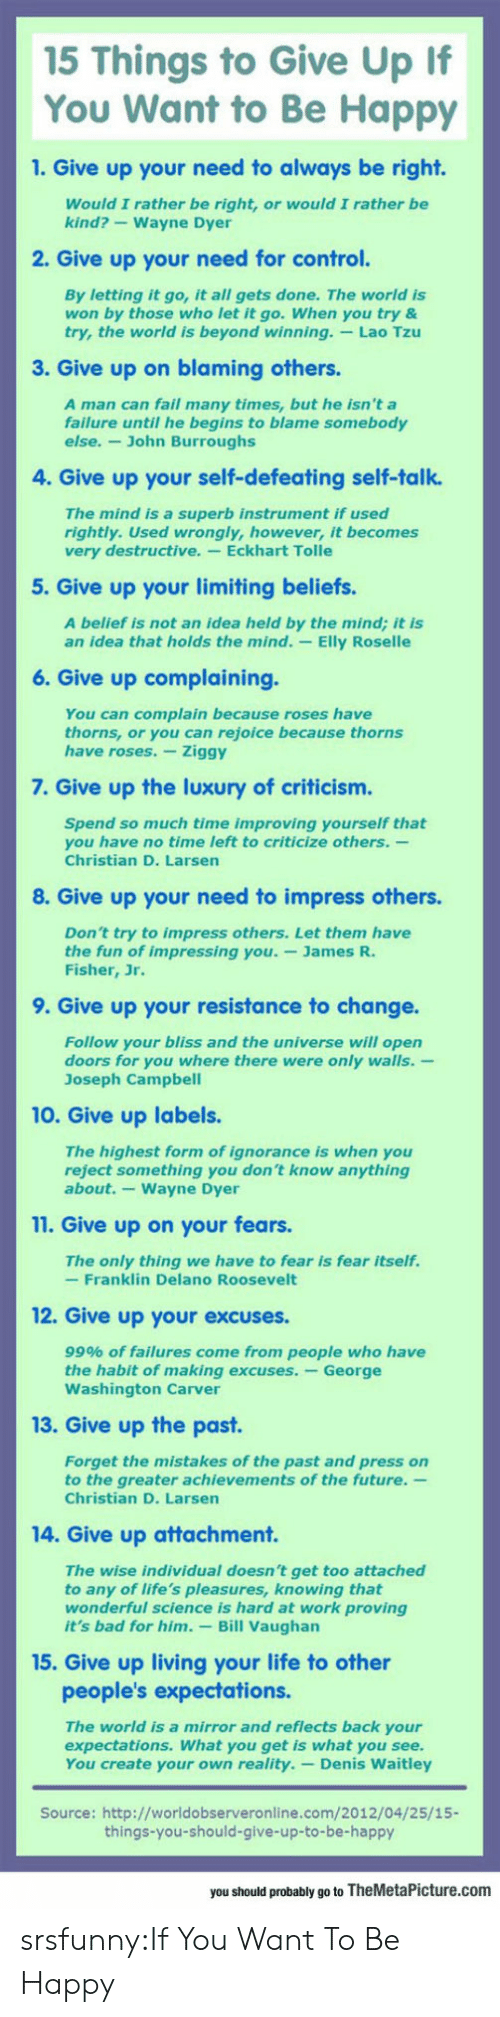 Bad, Fail, and Future: 15 Things to Give Up If  You Want to Be Happy  1. Give up your need to always be right.  Would I rather be right, or would I rather be  kind?-Wayne Dyer  2. Give up your need for control.  By letting it go, it all gets done. The world is  won by those who let it go. When you try &  try, the world is beyond winning. Lao Tzu  3. Give up on blaming others  A man can fail many times, but he isn't a  failure until he begins to blame somebody  else.- John Burroughs  4. Give up your self-defeating self-talk.  The mind is a superb instrument if used  rightly. Used wrongly, however, it becomes  very destructive. Eckhart Tolle  5. Give up your limiting beliefs.  A belief is not an idea held by the mind; it is  an idea that holds the mind. -Elly Roselle  6. Give up complaining.  You can complain because roses have  thorns, or you can rejoice because thorns  have roses. Ziggy  7. Give up the luxury of criticism.  Spend so much time improving yourself that  you have no time left to criticize others.-  Christian D. Larsen  8. Give up your need to impress others.  Don't try to impress others. Let them have  the fun of impressing you.-James R.  Fisher, Jr.  9. Give up your resistance to change.  Follow your bliss and the universe will open  doors for you where there were only walls.-  Joseph Campbel  10. Give up labels.  The highest form of ignorance is when you  reject something you don't know anything  about.-Wayne Dyer  11. Give up on your fears.  The only thing we have to fear is fear itself.  -Franklin Delano Roosevelt  12. Give up your excuses.  99% of failures come from people who have  the habit of making excuses. -George  Washington Carver  13. Give up the past  Forget the mistakes of the past and press on  to the greater achievements of the future.  Christian D. Larsen  14. Give up attachment.  The wise individual doesn't get too attached  to any of life's pleasures, knowing that  wonderful science is hard at work proving  it's bad for him. Bill Vaughan  15. Give up living your life to other  people's expectations.  The world is a mirror and reflects back your  expectations. What you get is what you see.  You create your own reality.- Denis Waitley  Source: http://worldobserveronline.com/2012/04/25/15-  things-you-should-give-up-to-be-happy  you should probably go to TheMetaPicture.com srsfunny:If You Want To Be Happy